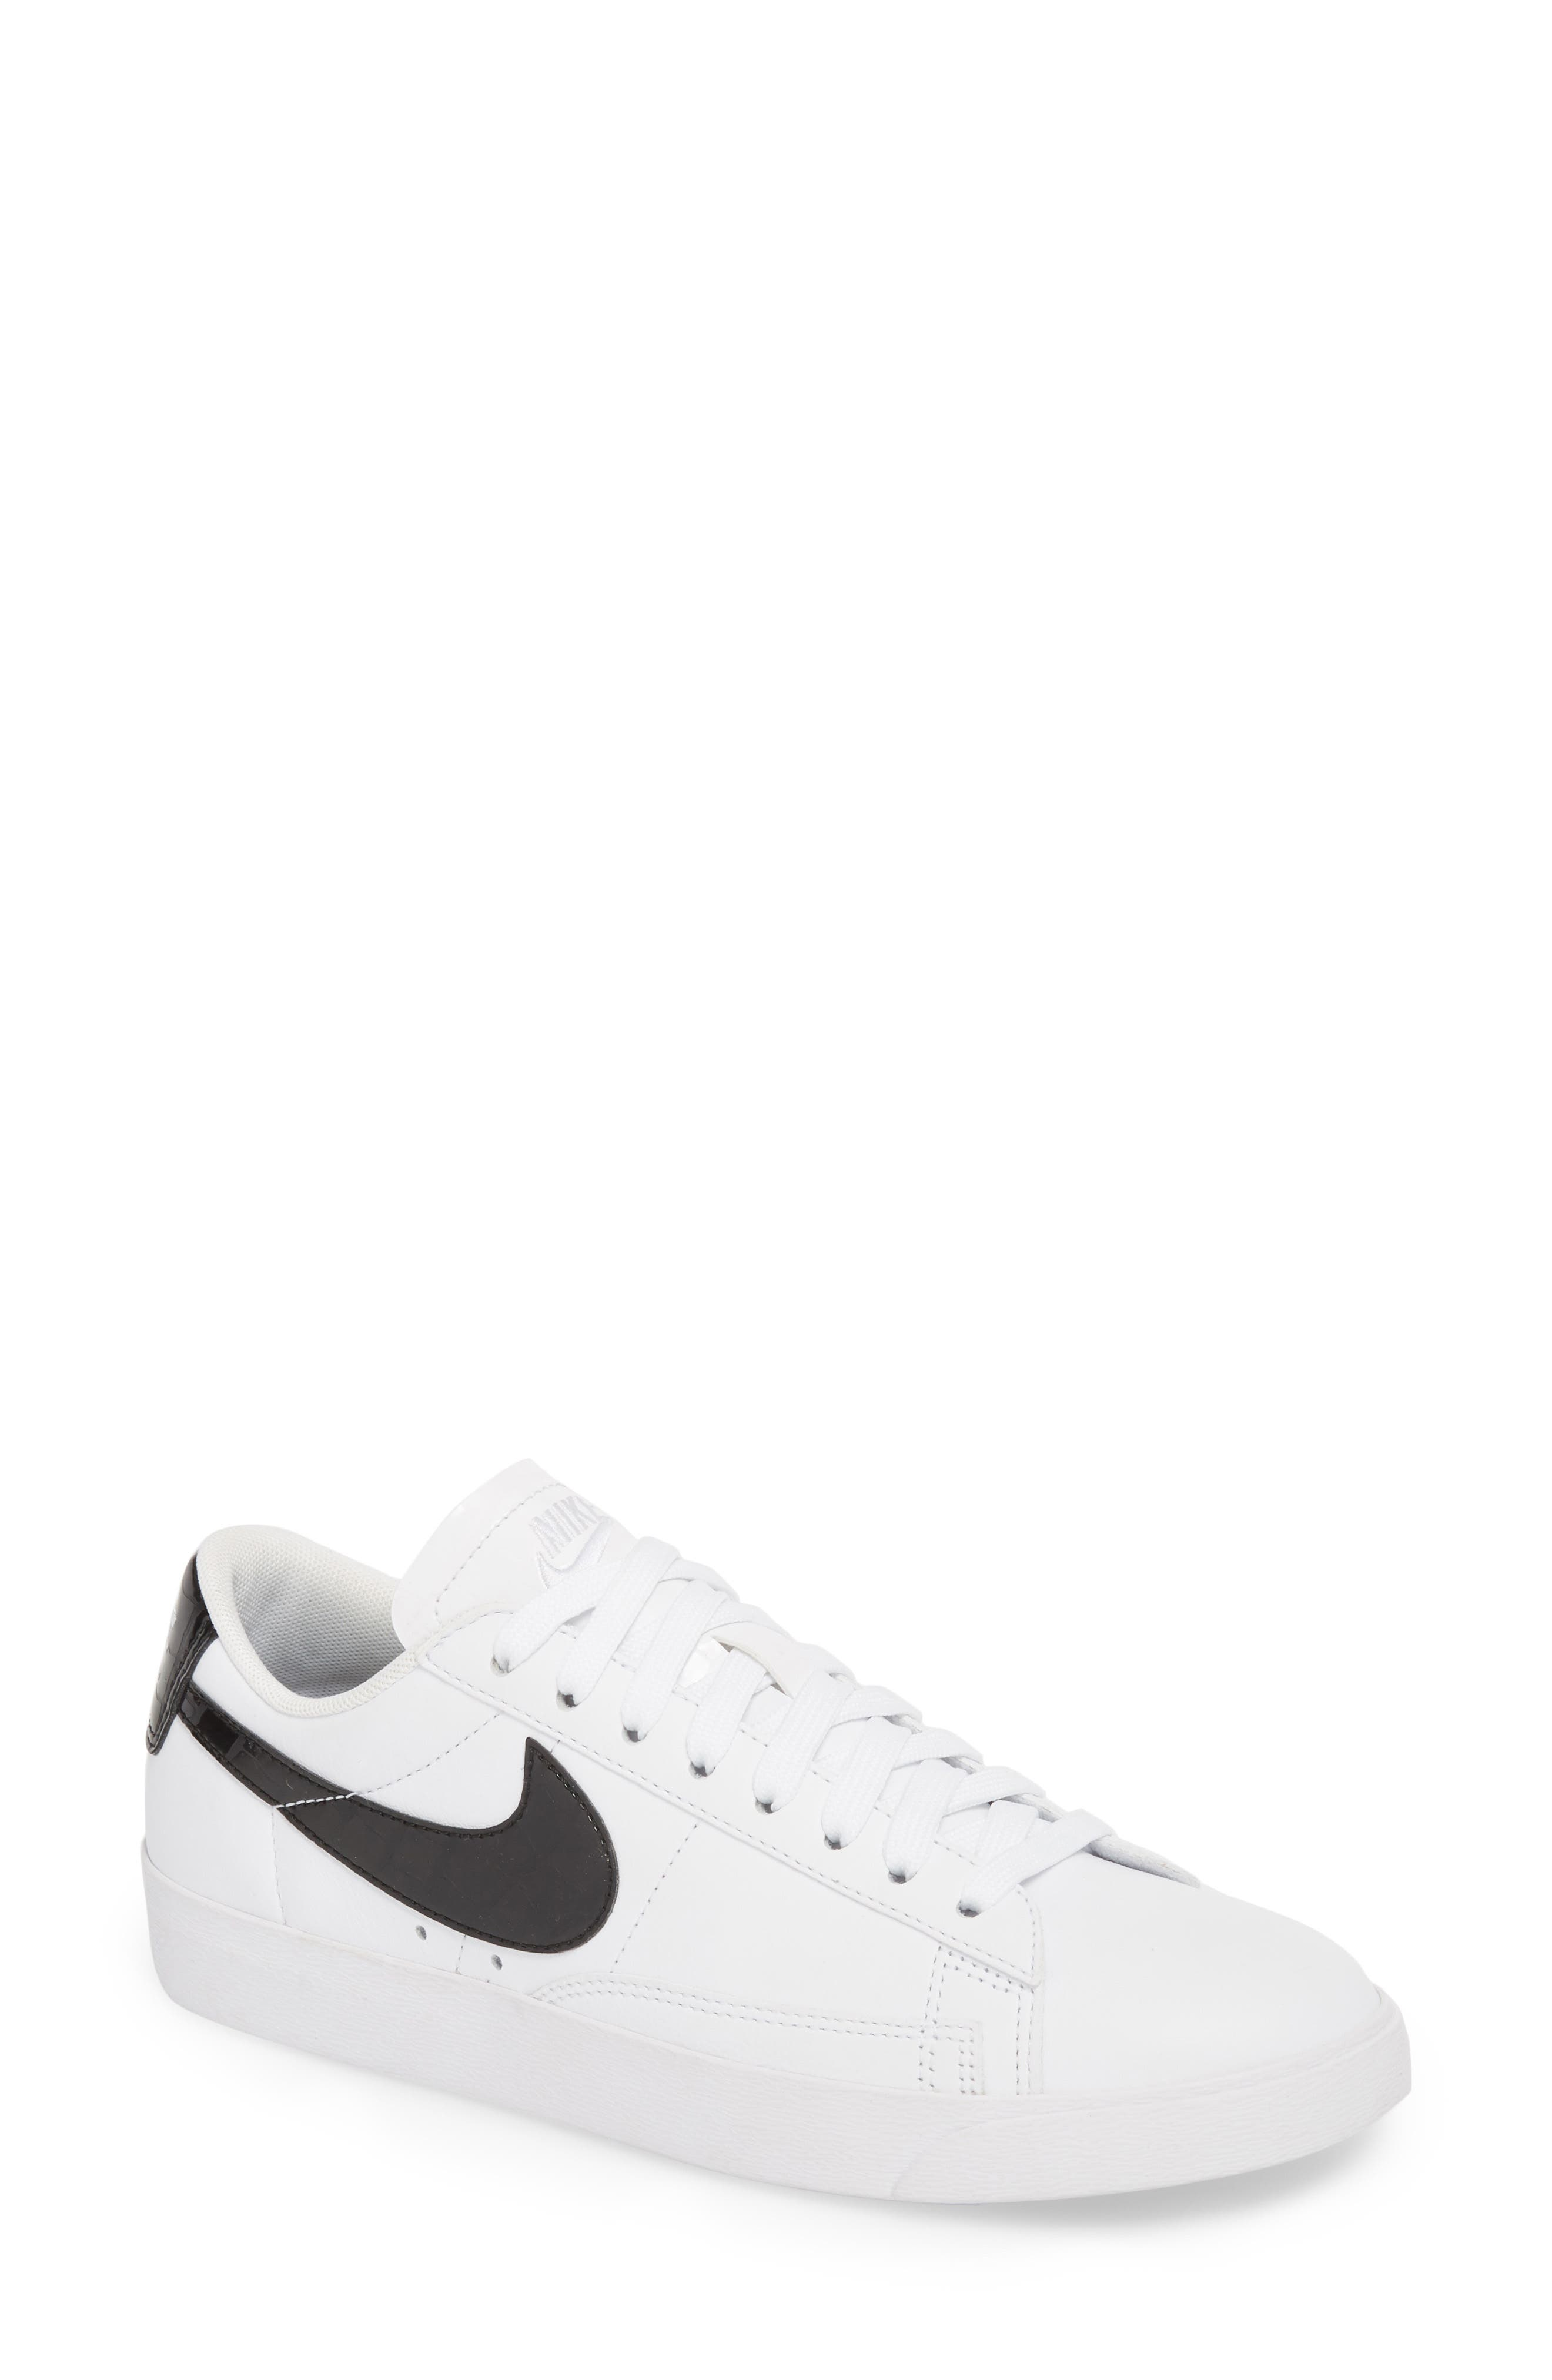 NIKE, Blazer Low Essential Sneaker, Main thumbnail 1, color, 100